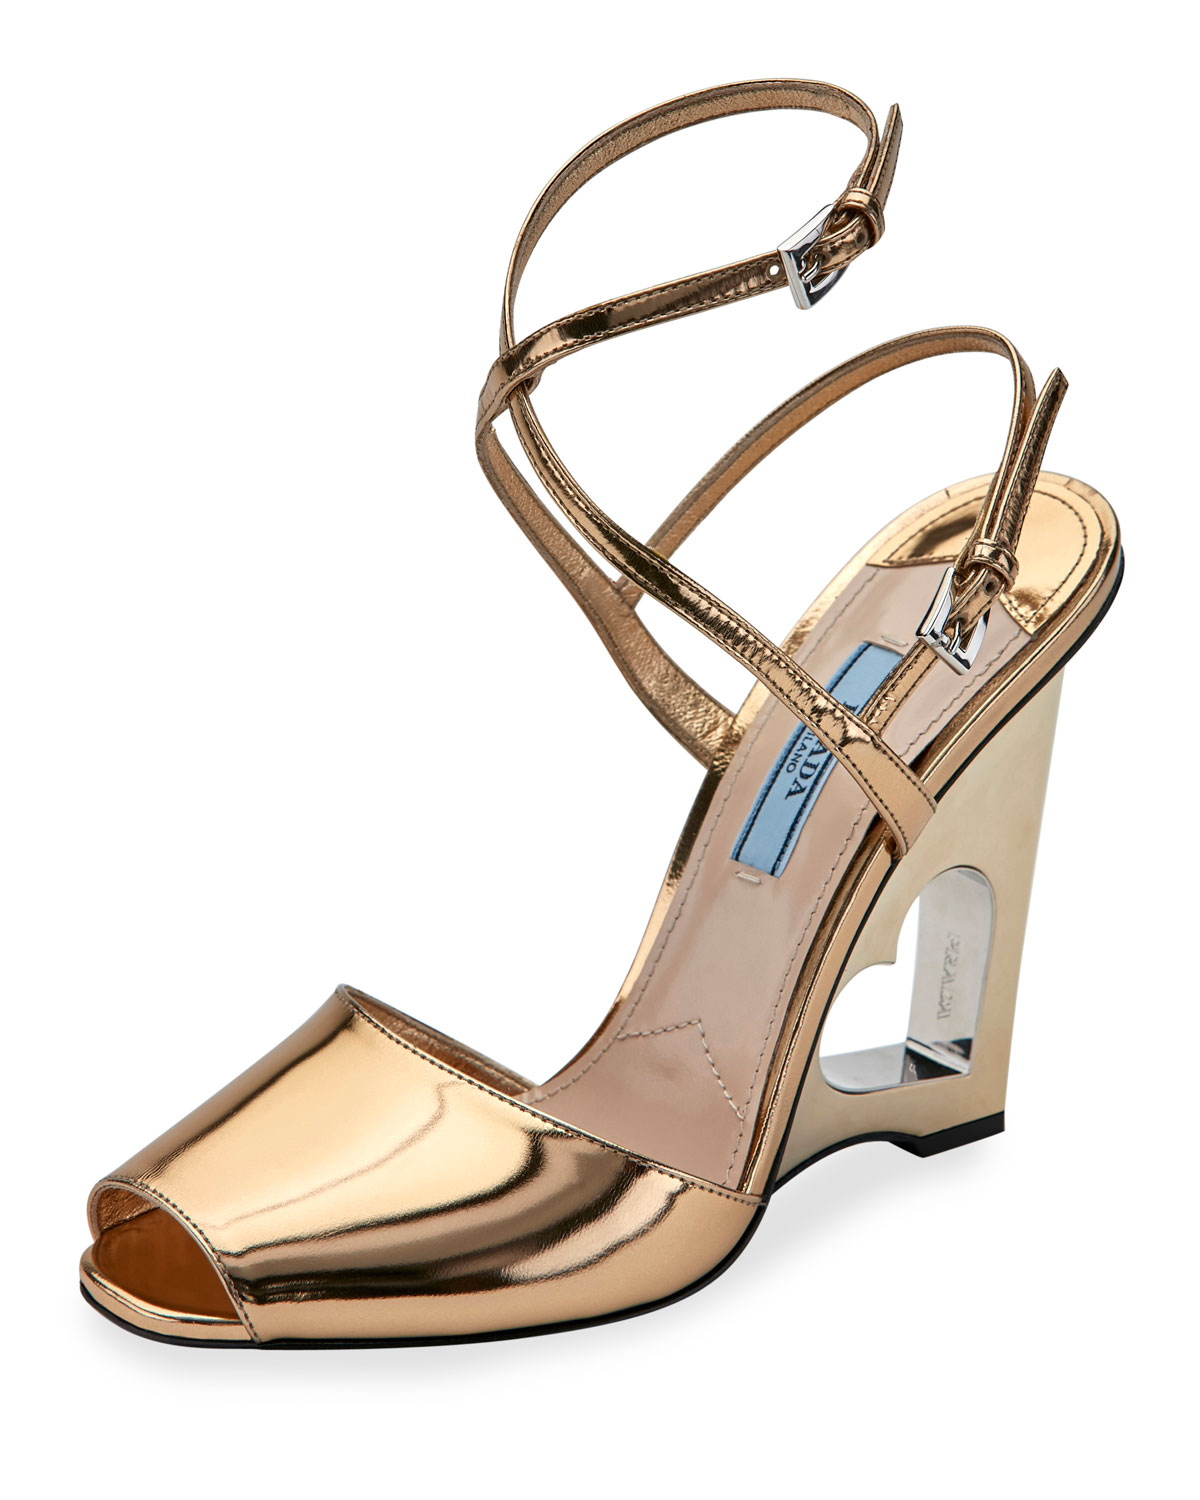 Prada Cutout Leather Sandals cheap sale great deals free shipping countdown package best sale sale online buy cheap low cost Q59MEjc4